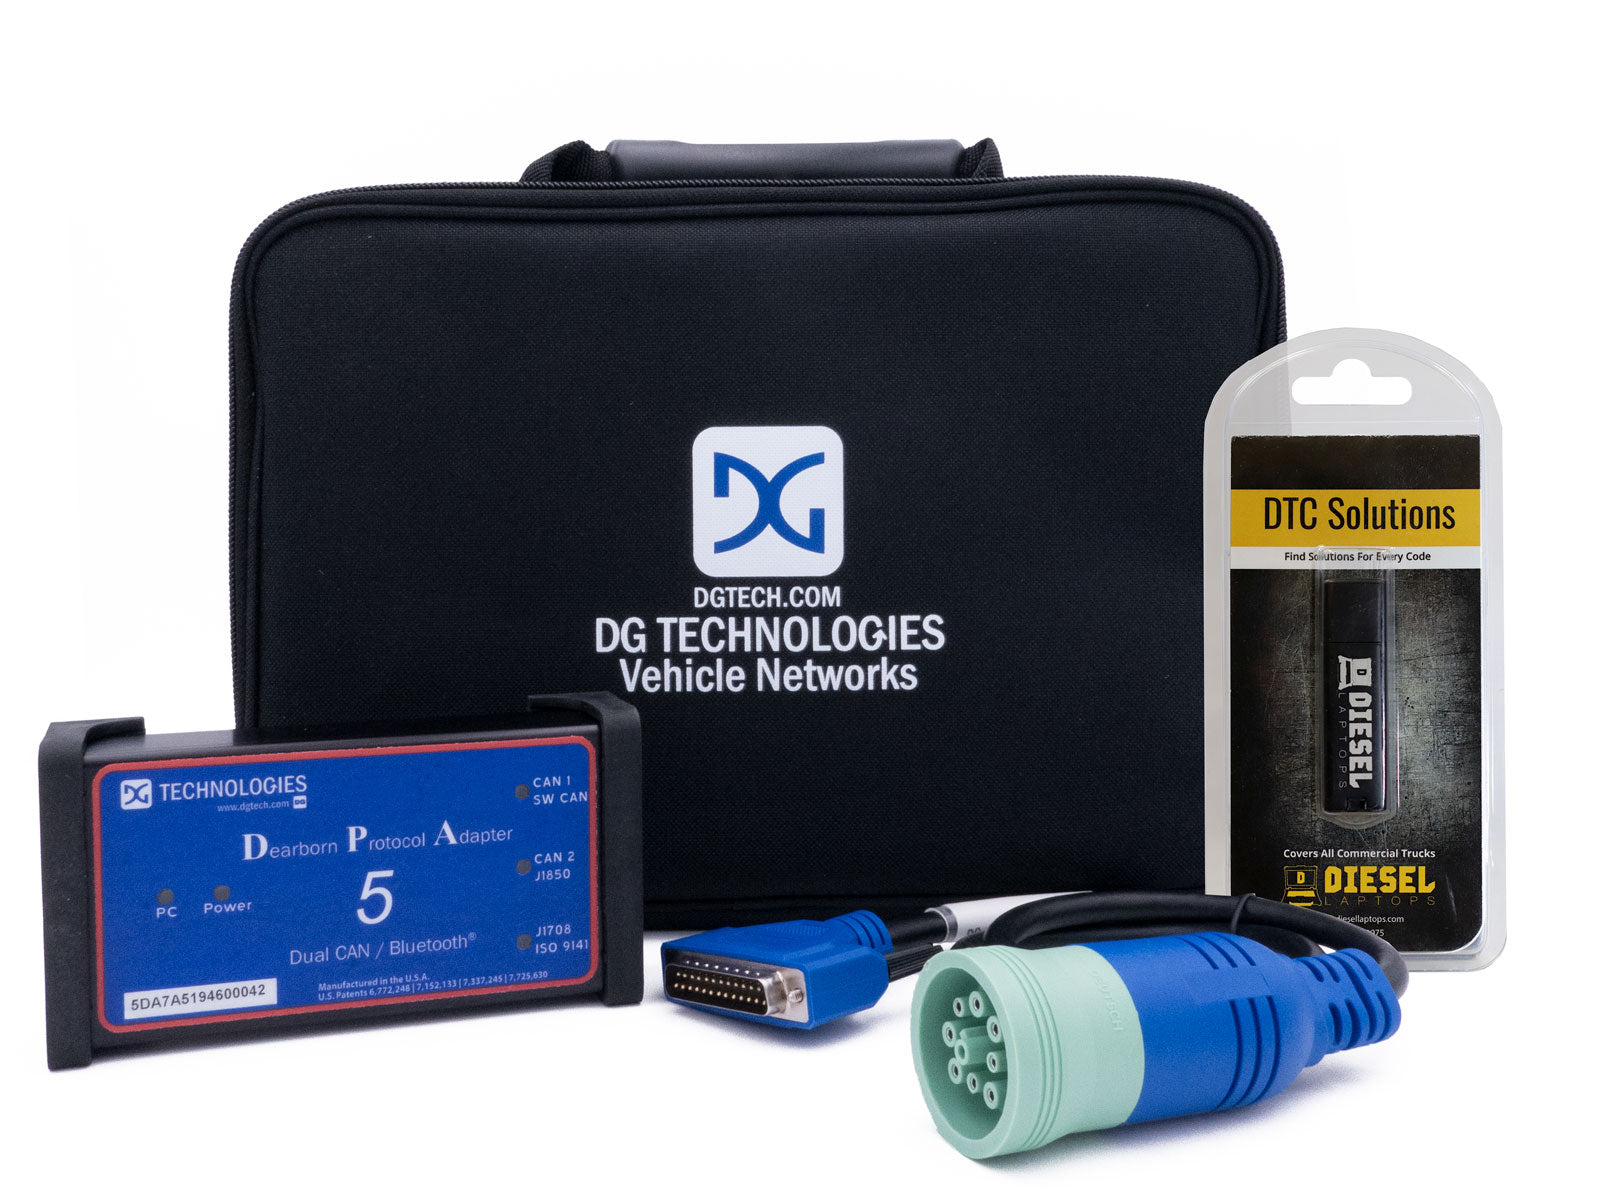 DG Tech DPA5 Bundled with Diesel Laptops DTC Solutions